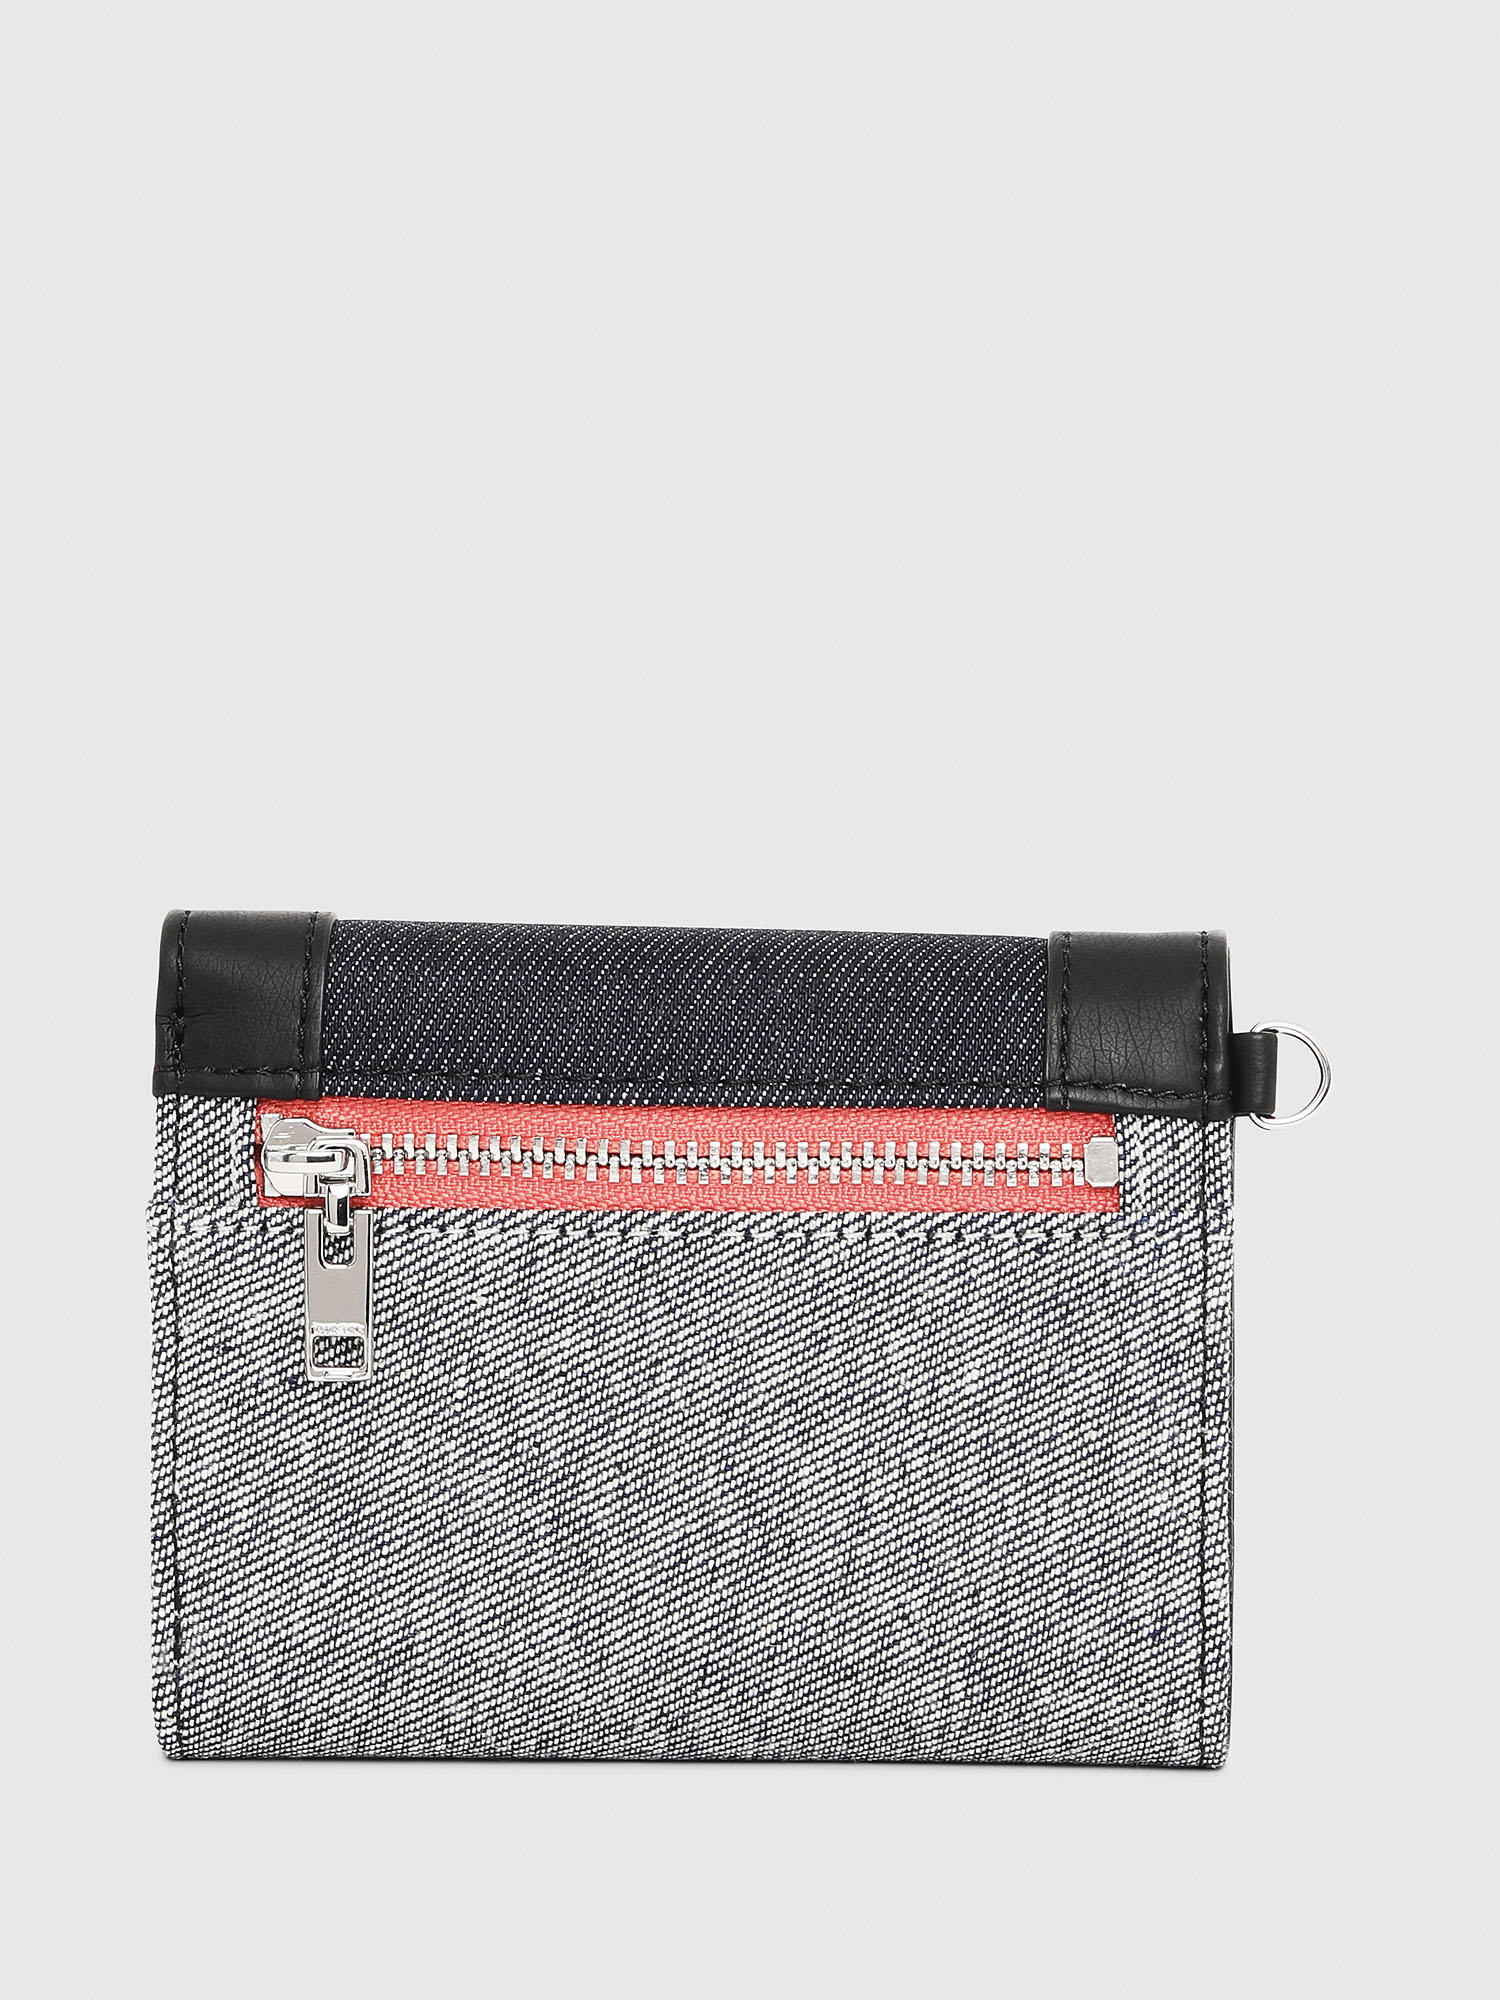 Diesel - YAMI II,  - Small Wallets - Image 2